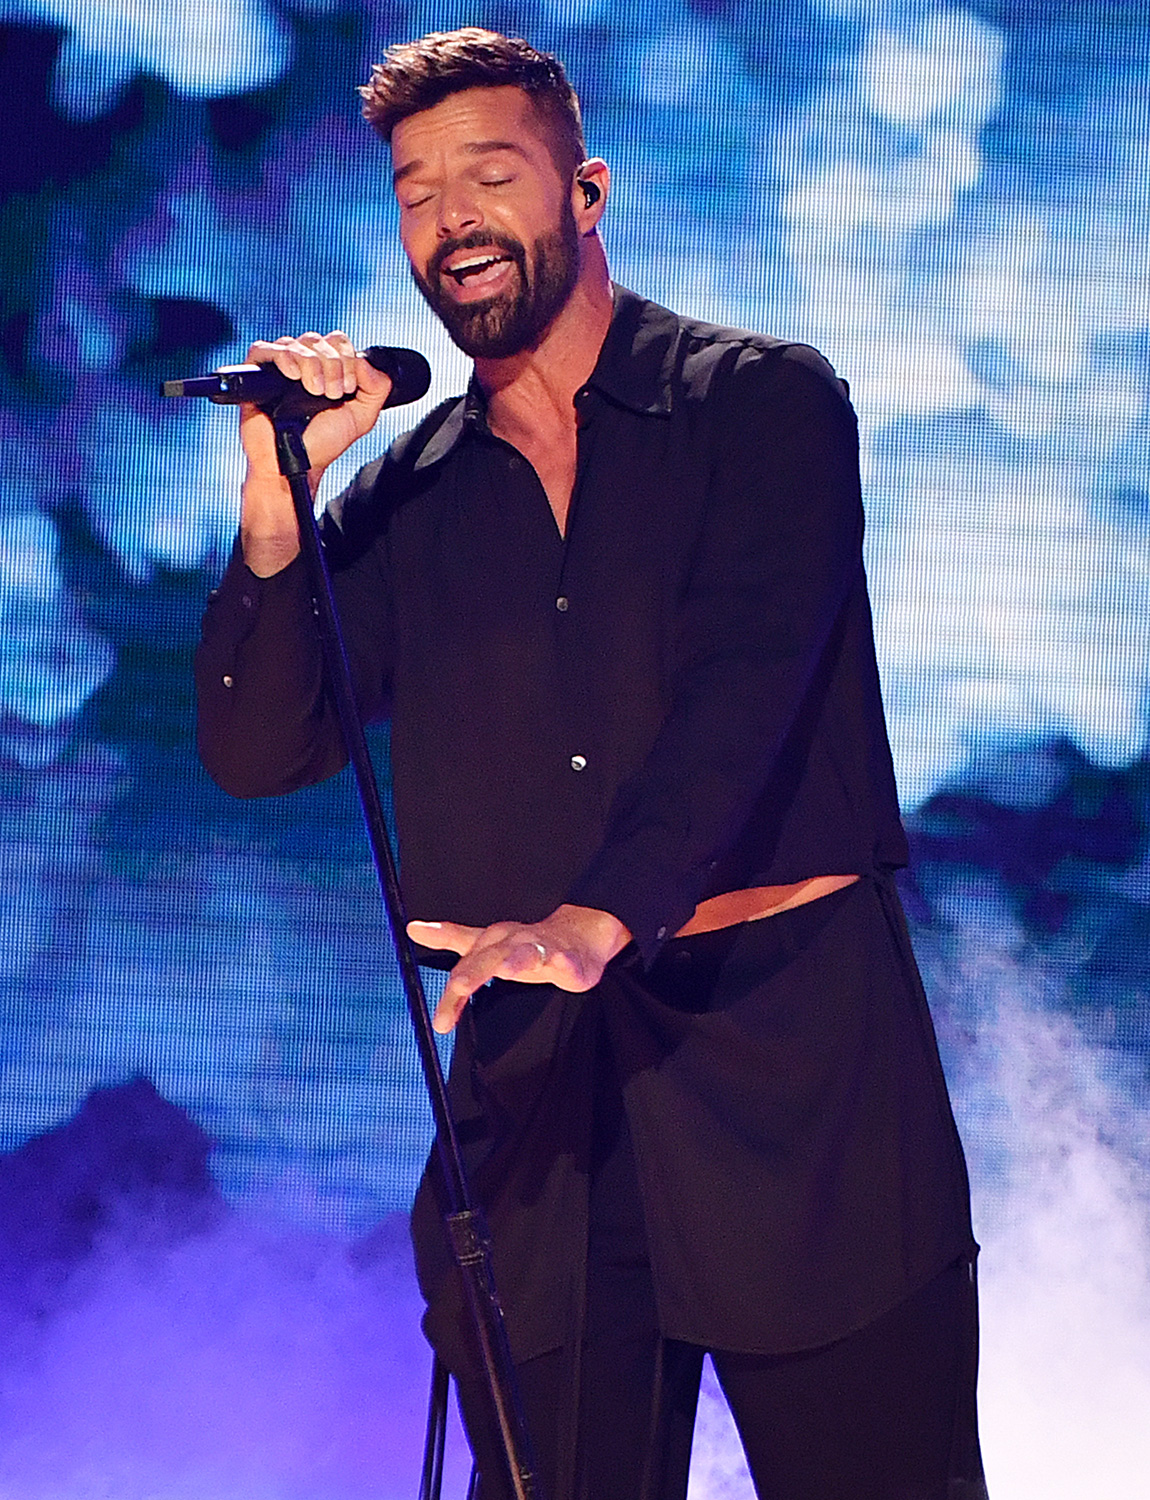 Ricky Martin performs live on stage at Univision's Premio Lo Nuestro 2020 at AmericanAirlines Arena on February 20, 2020 in Miami, Florida